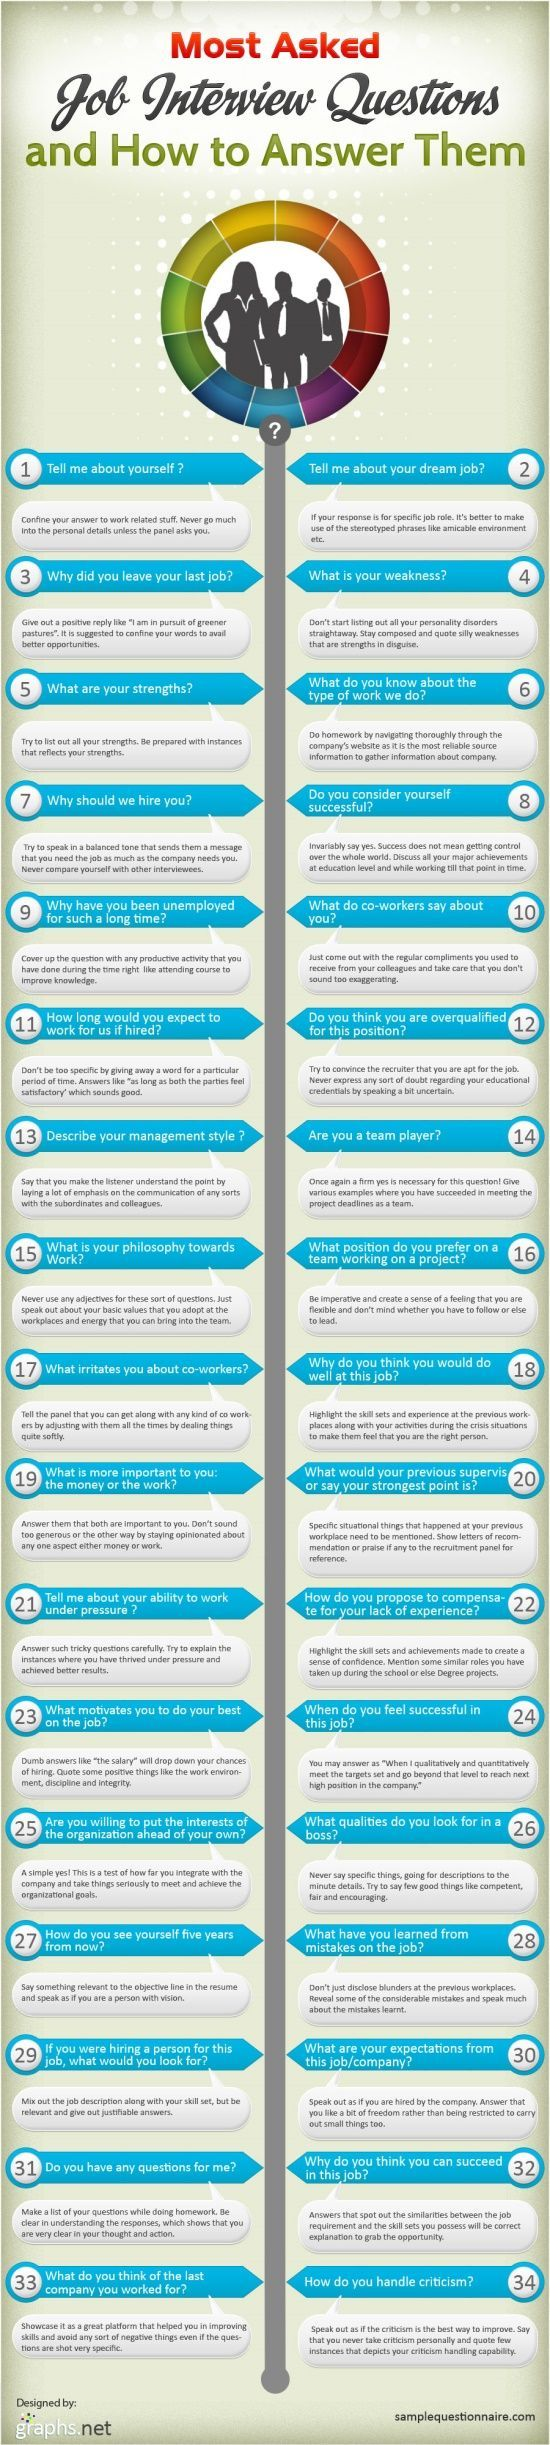 Check out this list of most asked job interview questions. This is a great refresher for someone changing jobs or a recent graduate! #productivity Productivity Tip #productive